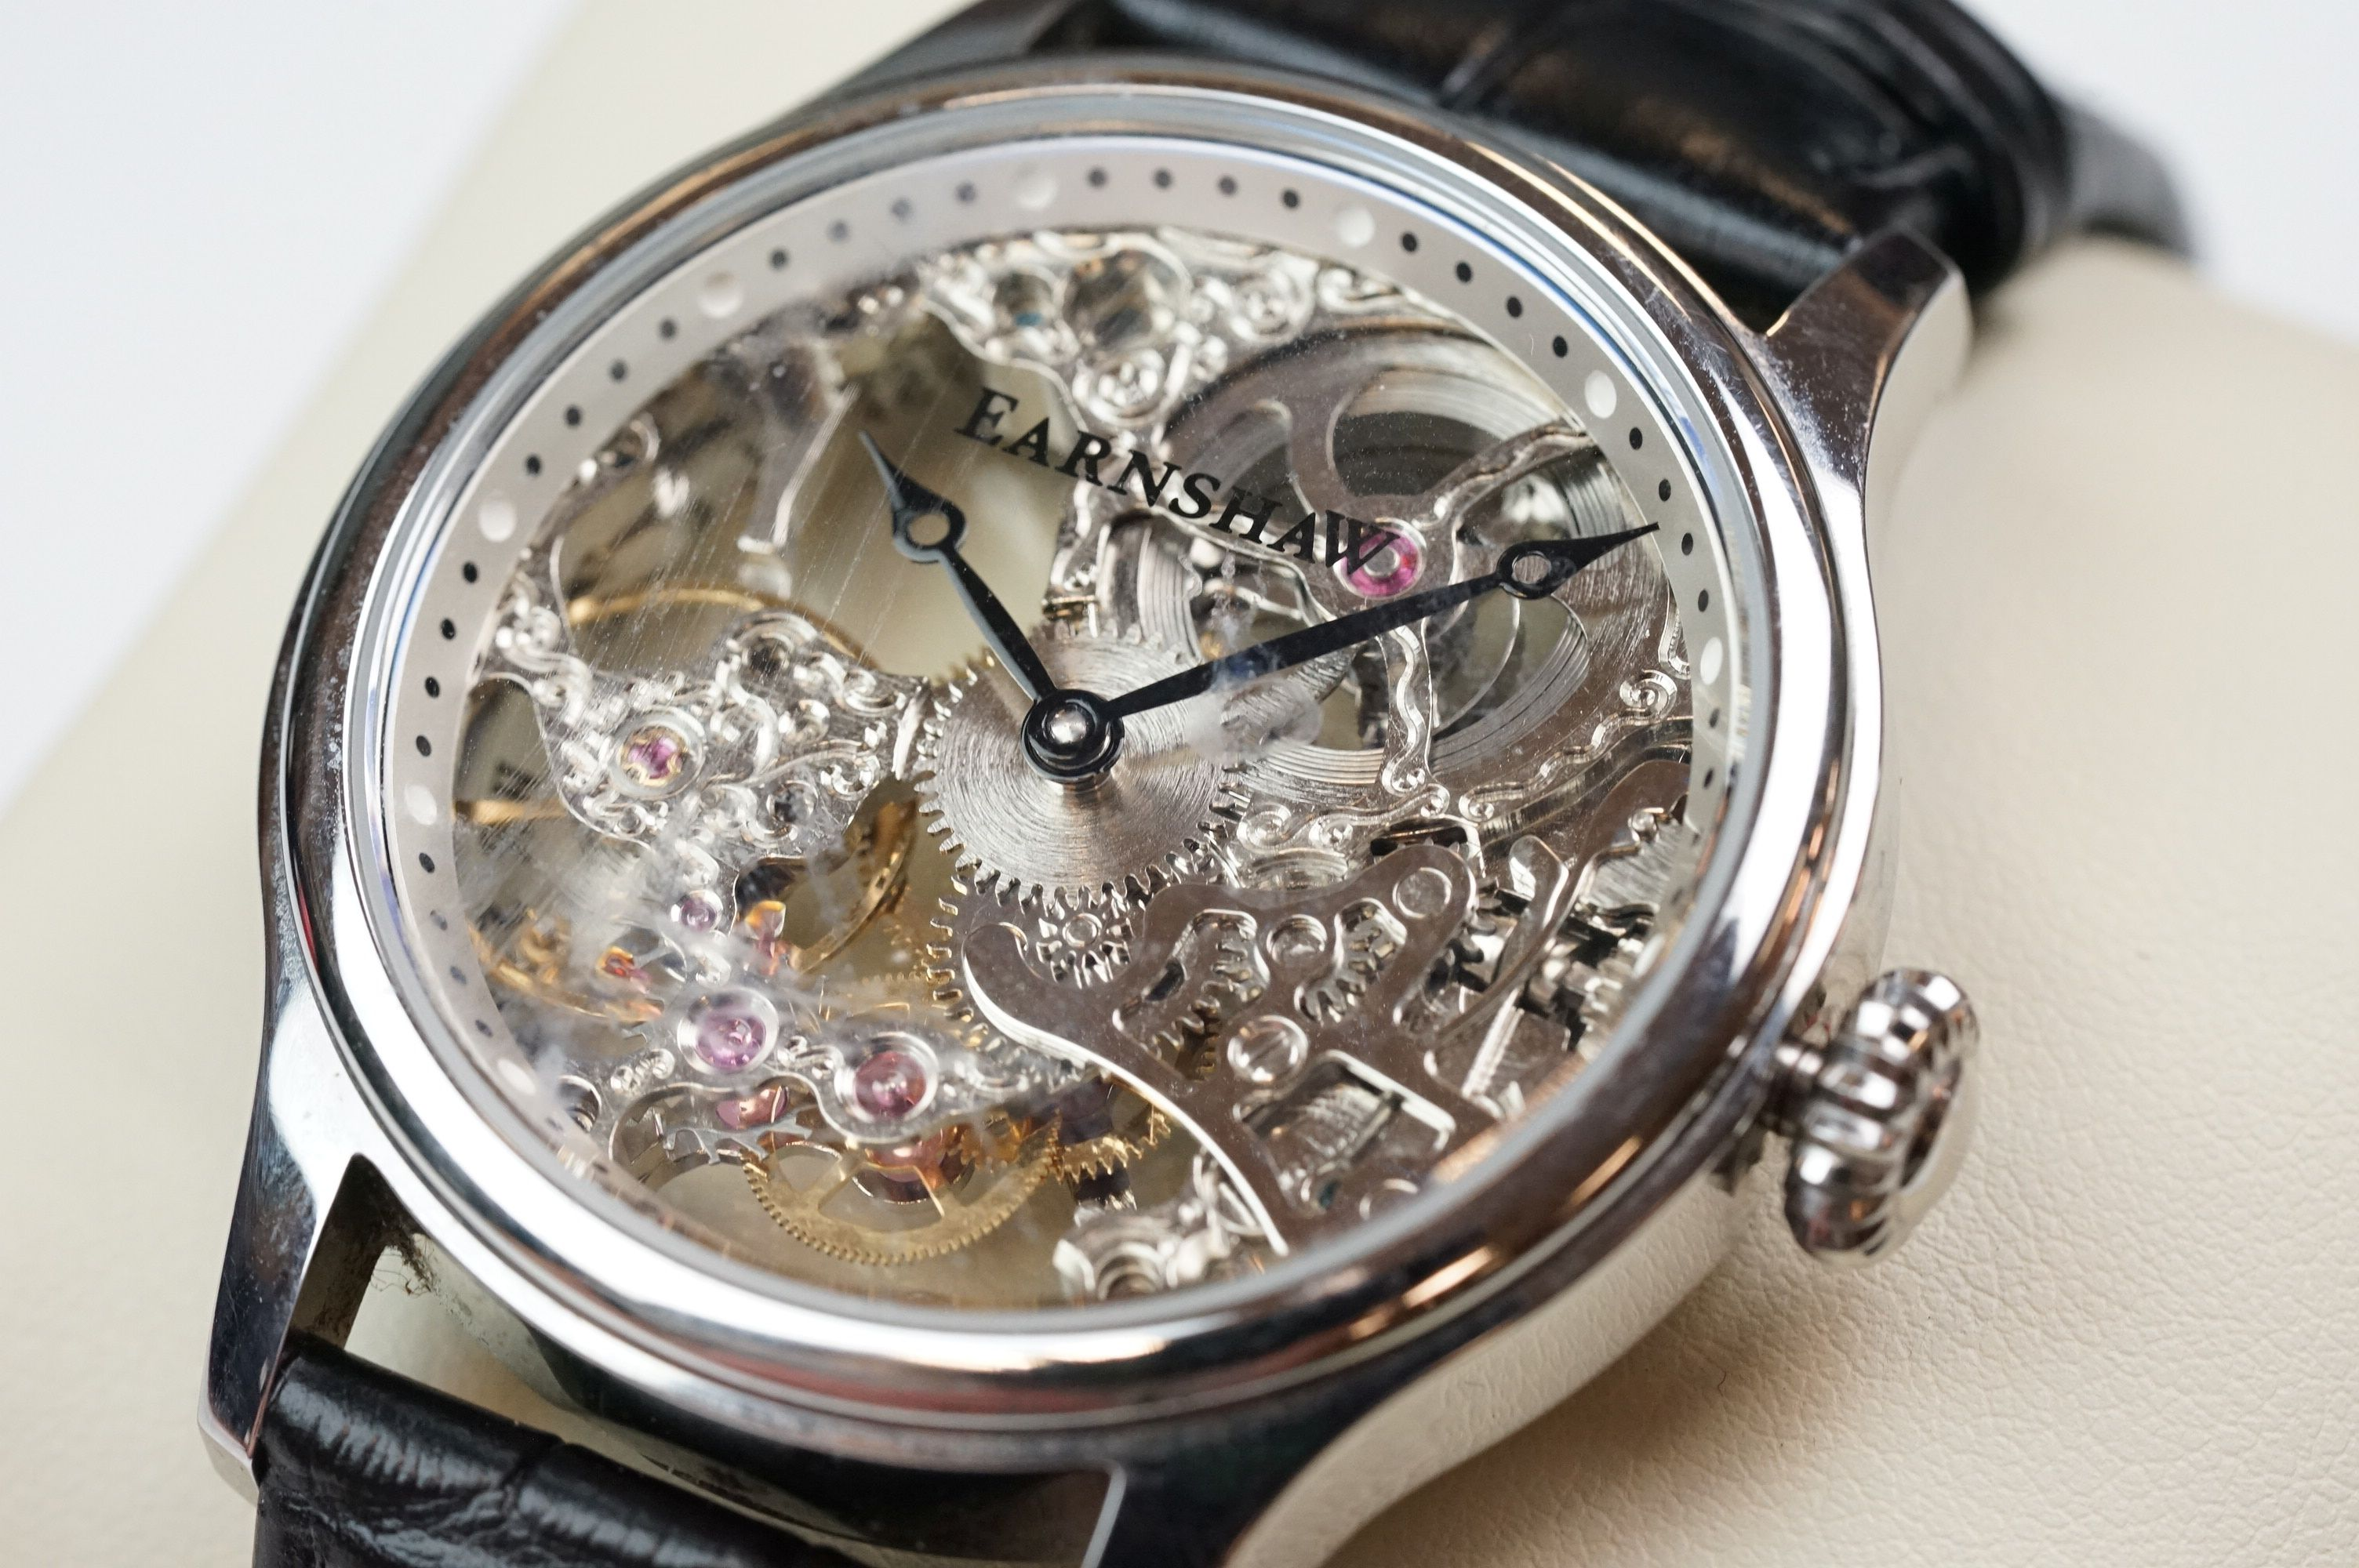 Earnshaw Gents wristwatch, skeleton face and dial, WR 5 ATM 8049, together with paperwork, box and - Image 2 of 9